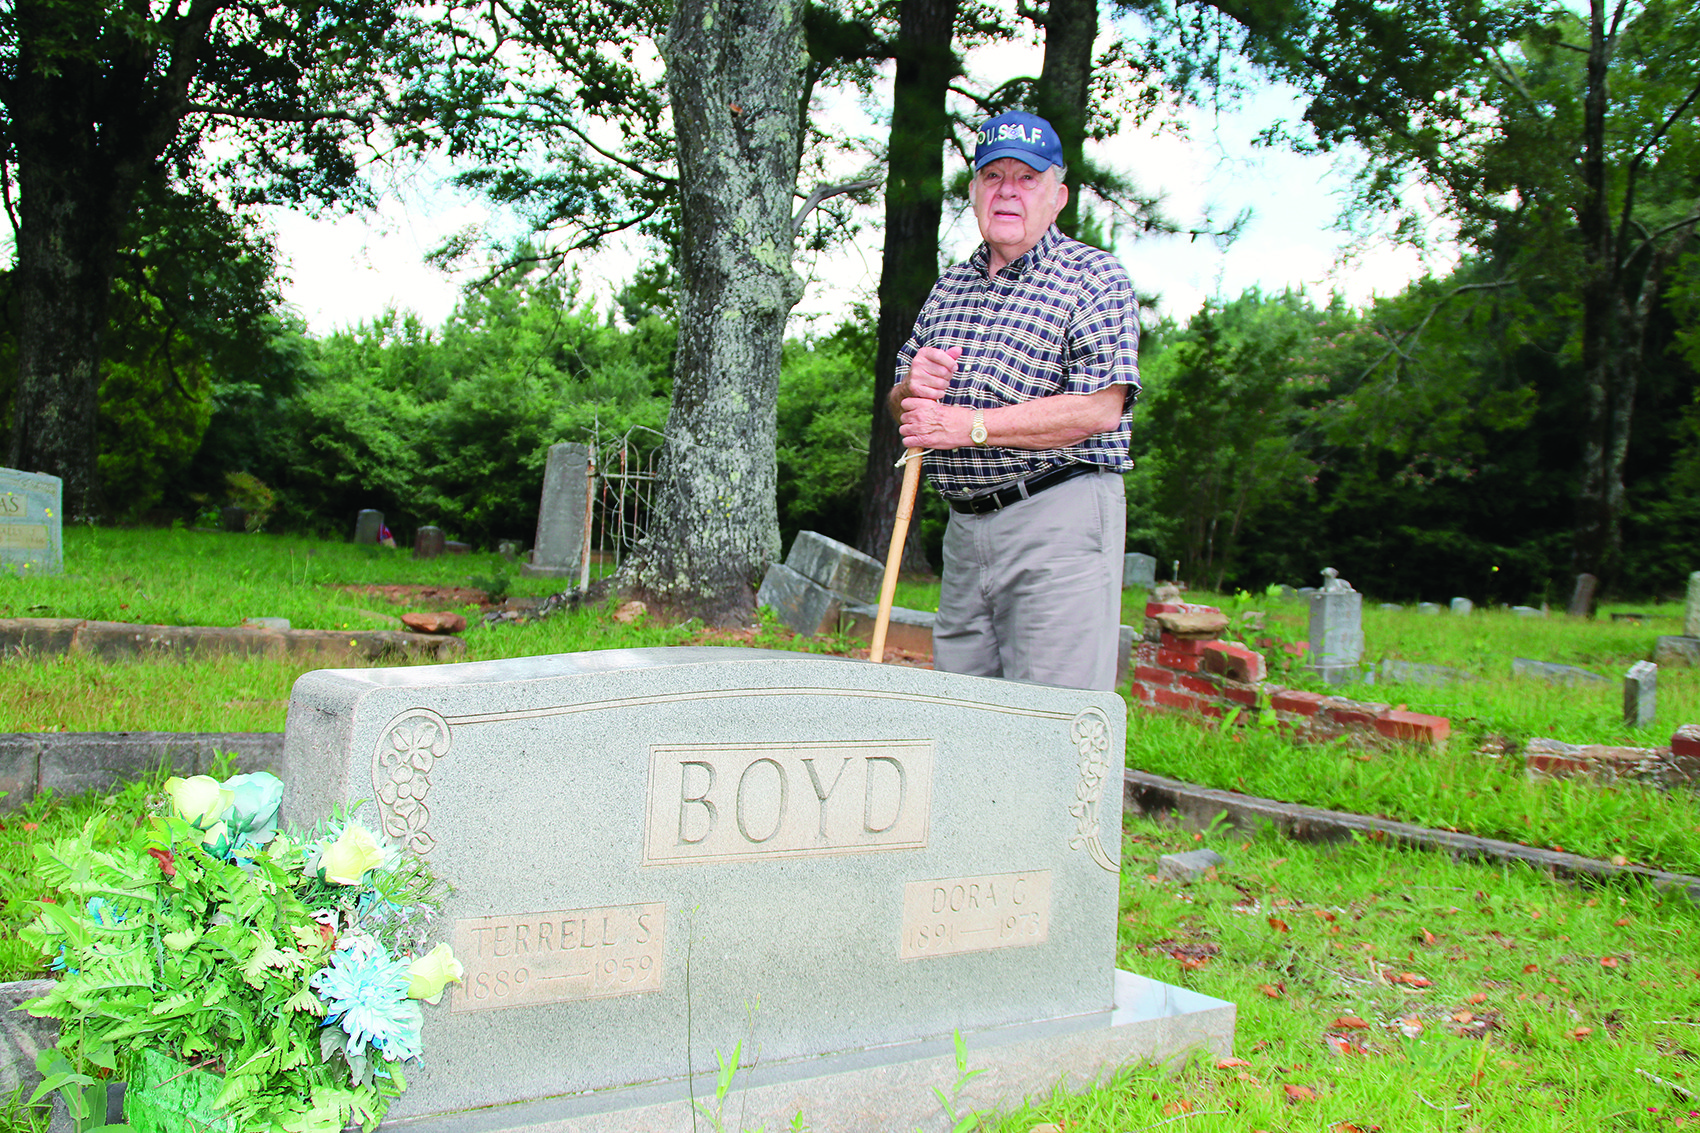 Gravlee finds history in cemeteries | Daily Mountain Eagle on